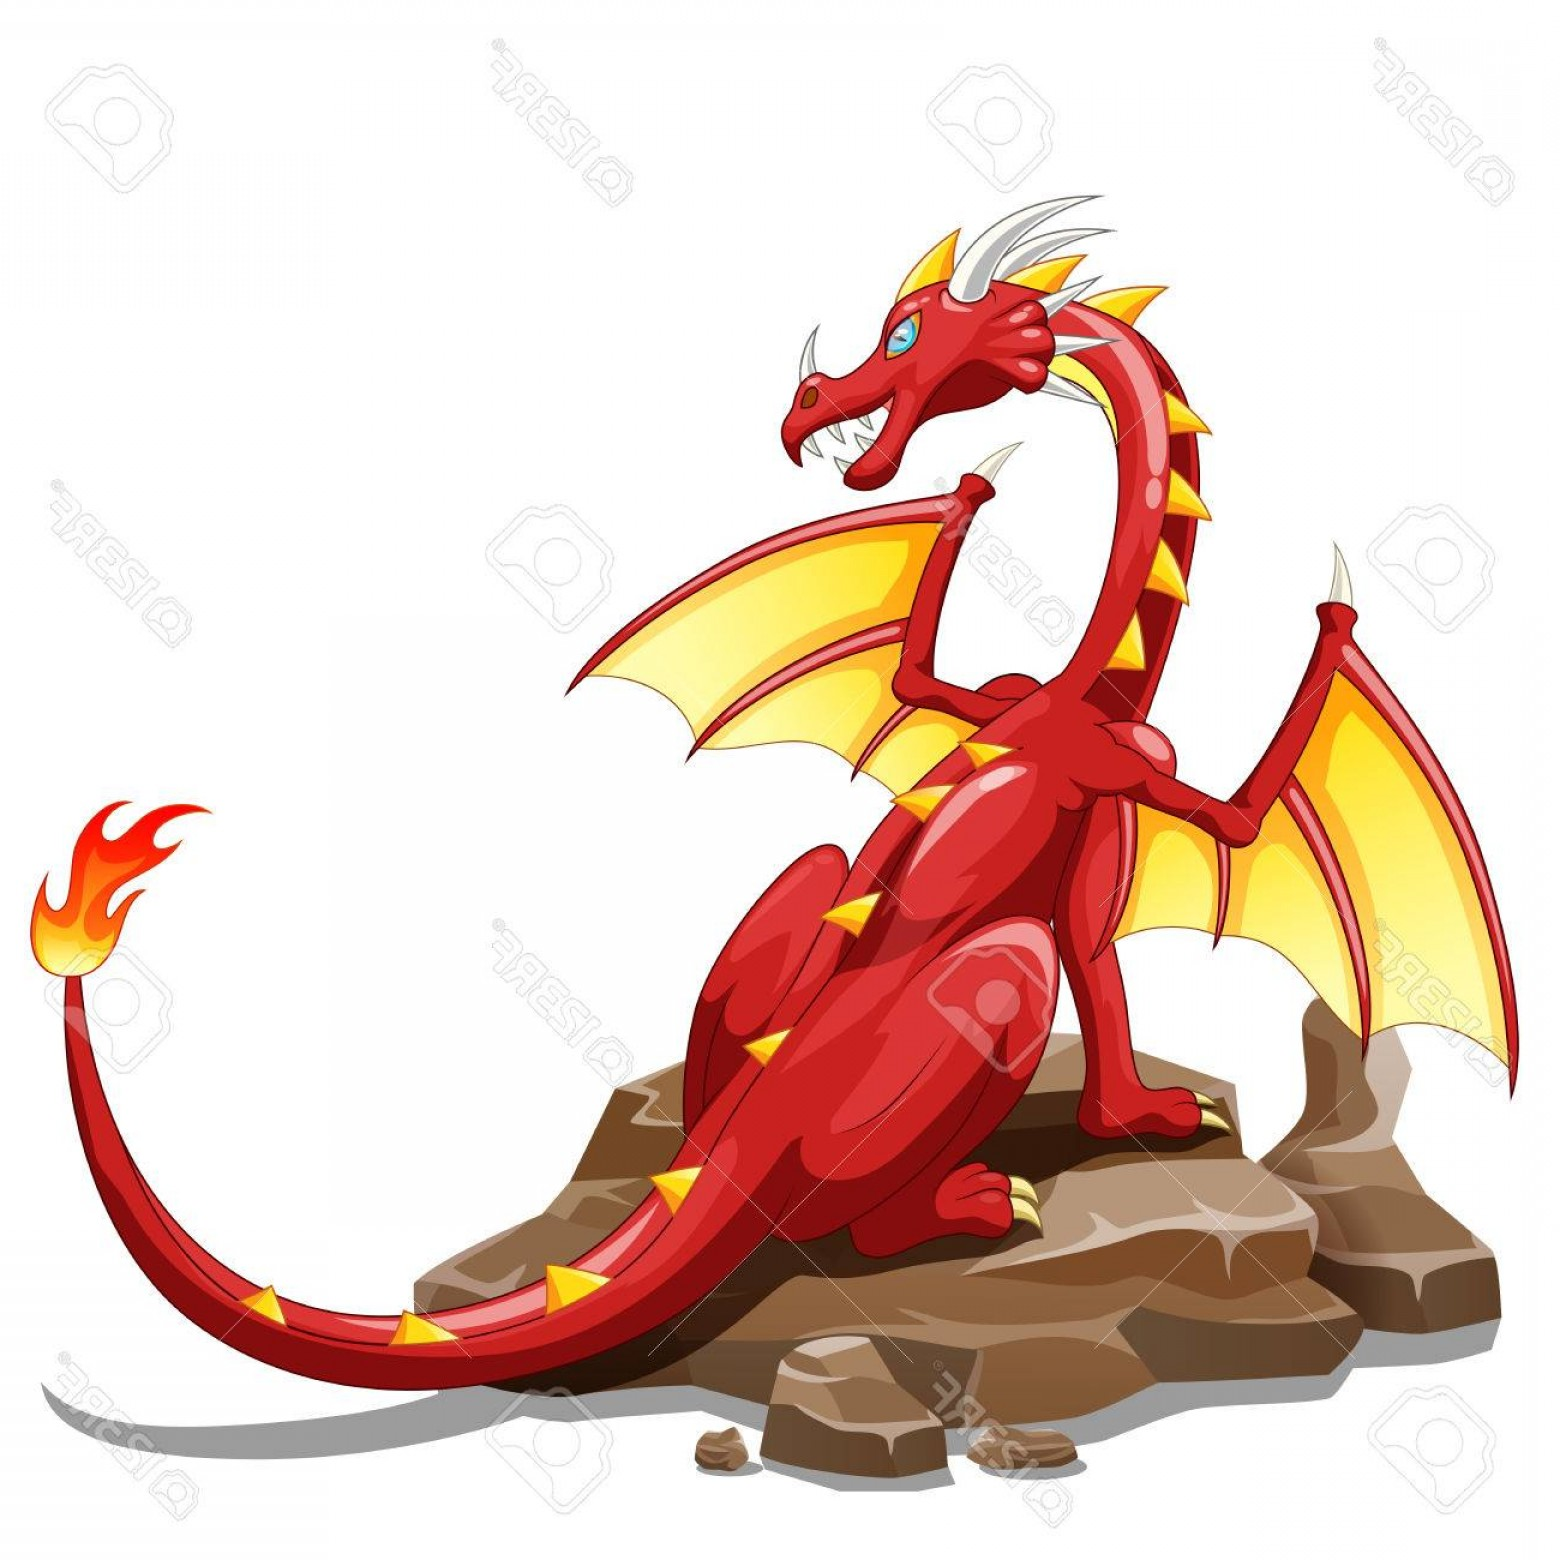 Dragon Fire Vector: Photostock Vector Dragon Fire Animal Cartoon Vector Illustration